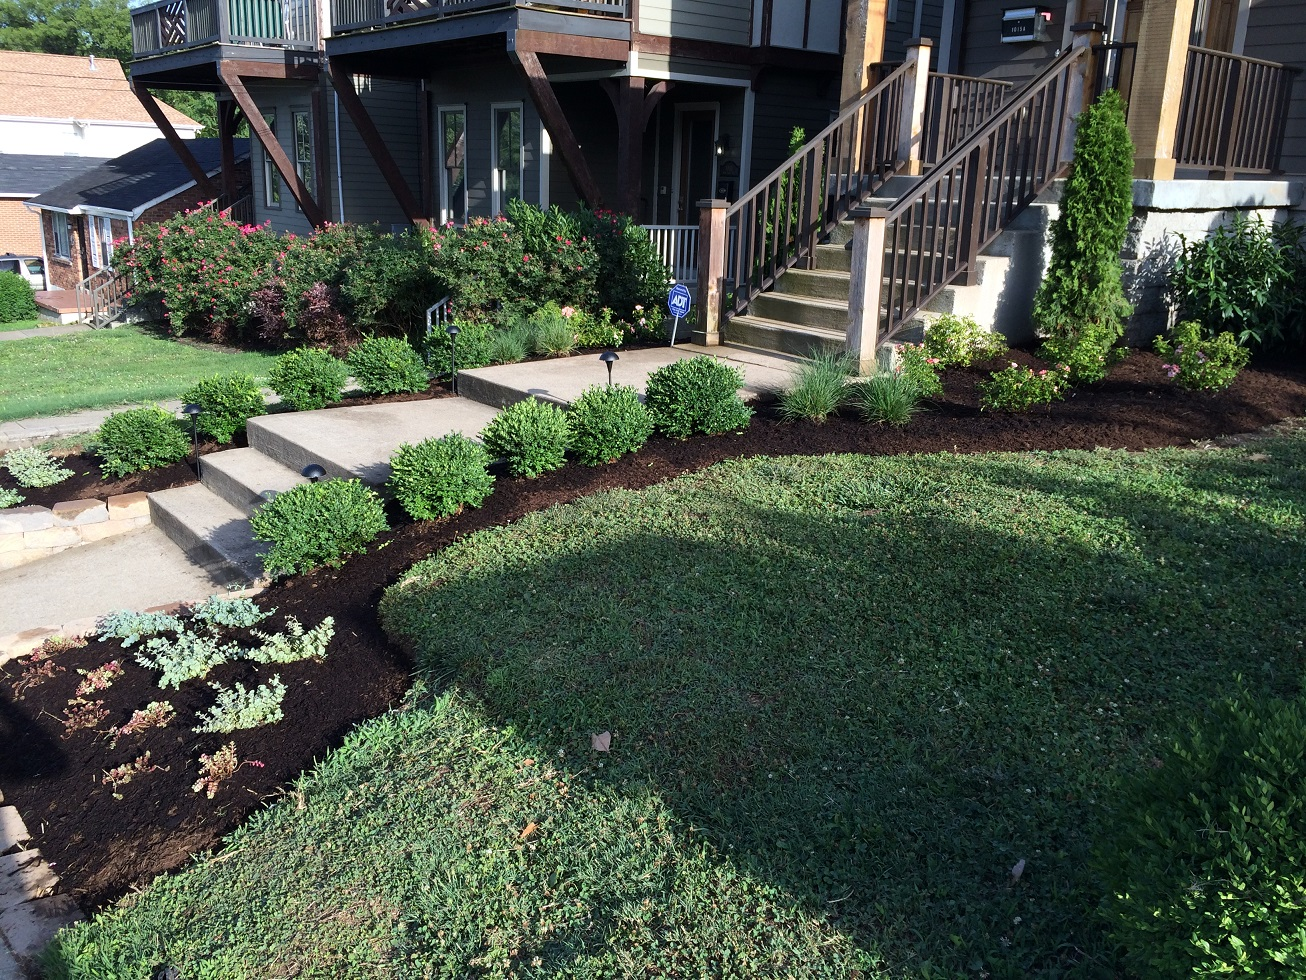 Landscaping Ideas to Improve Curb Appeal of Driveways and Walkways